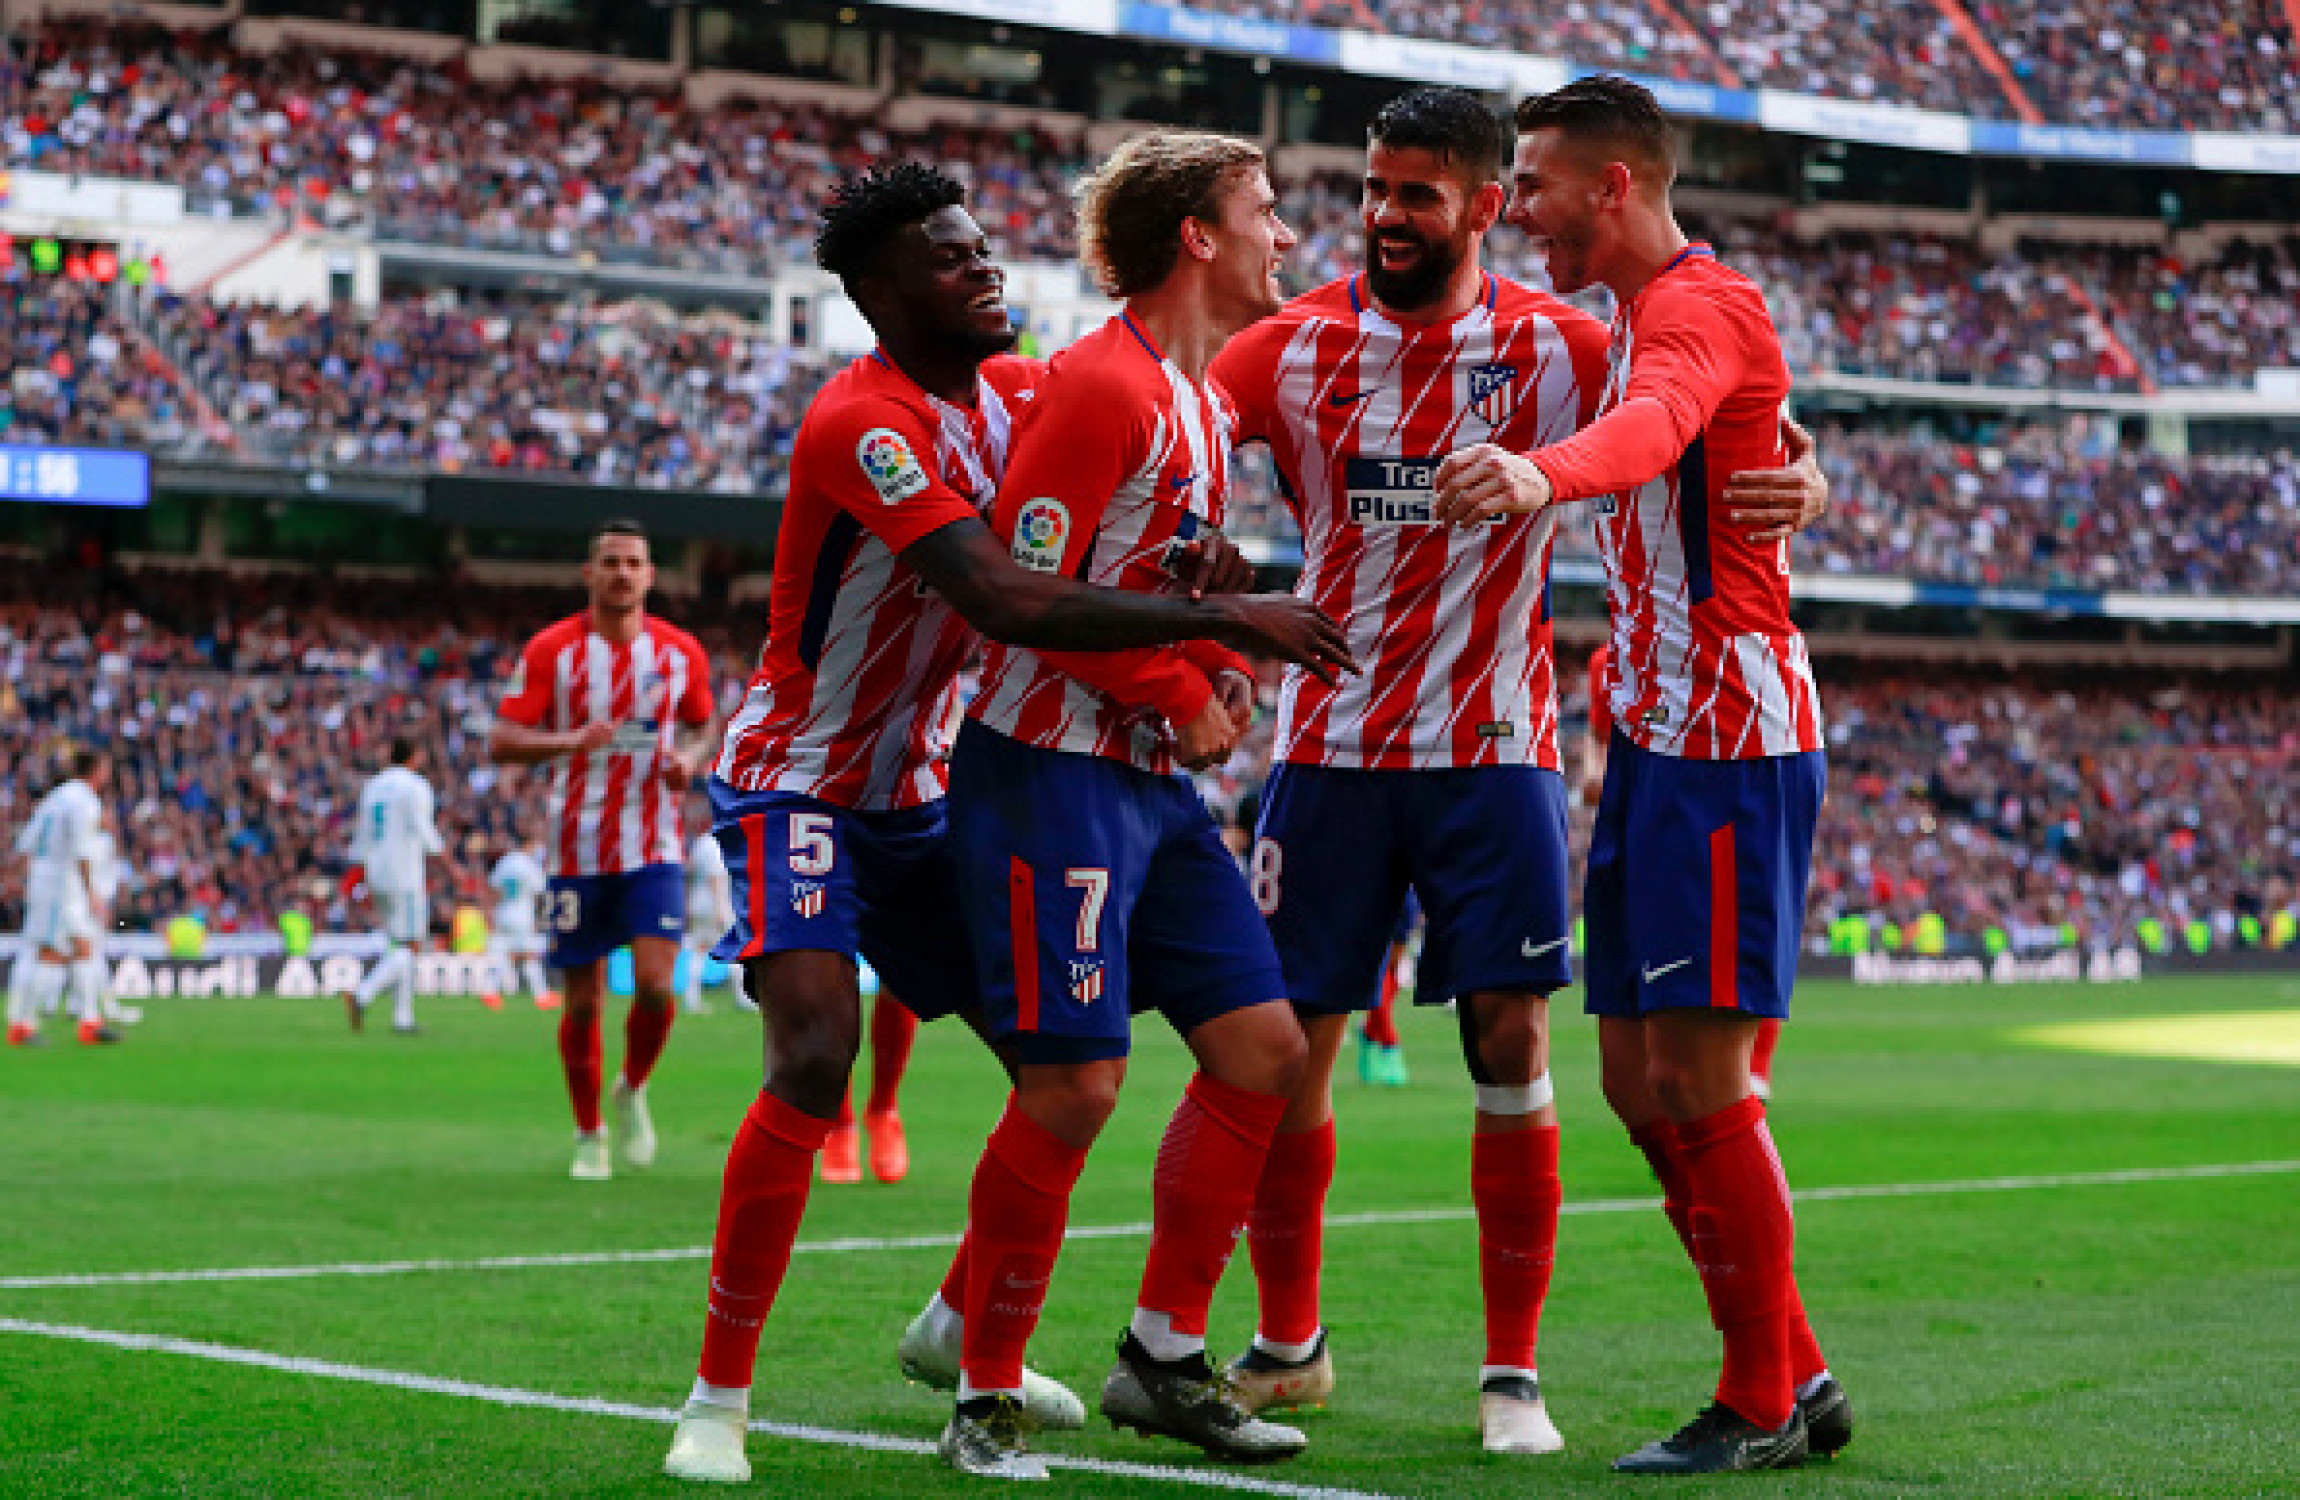 HT Report: Real Madrid 0-0 Atletico